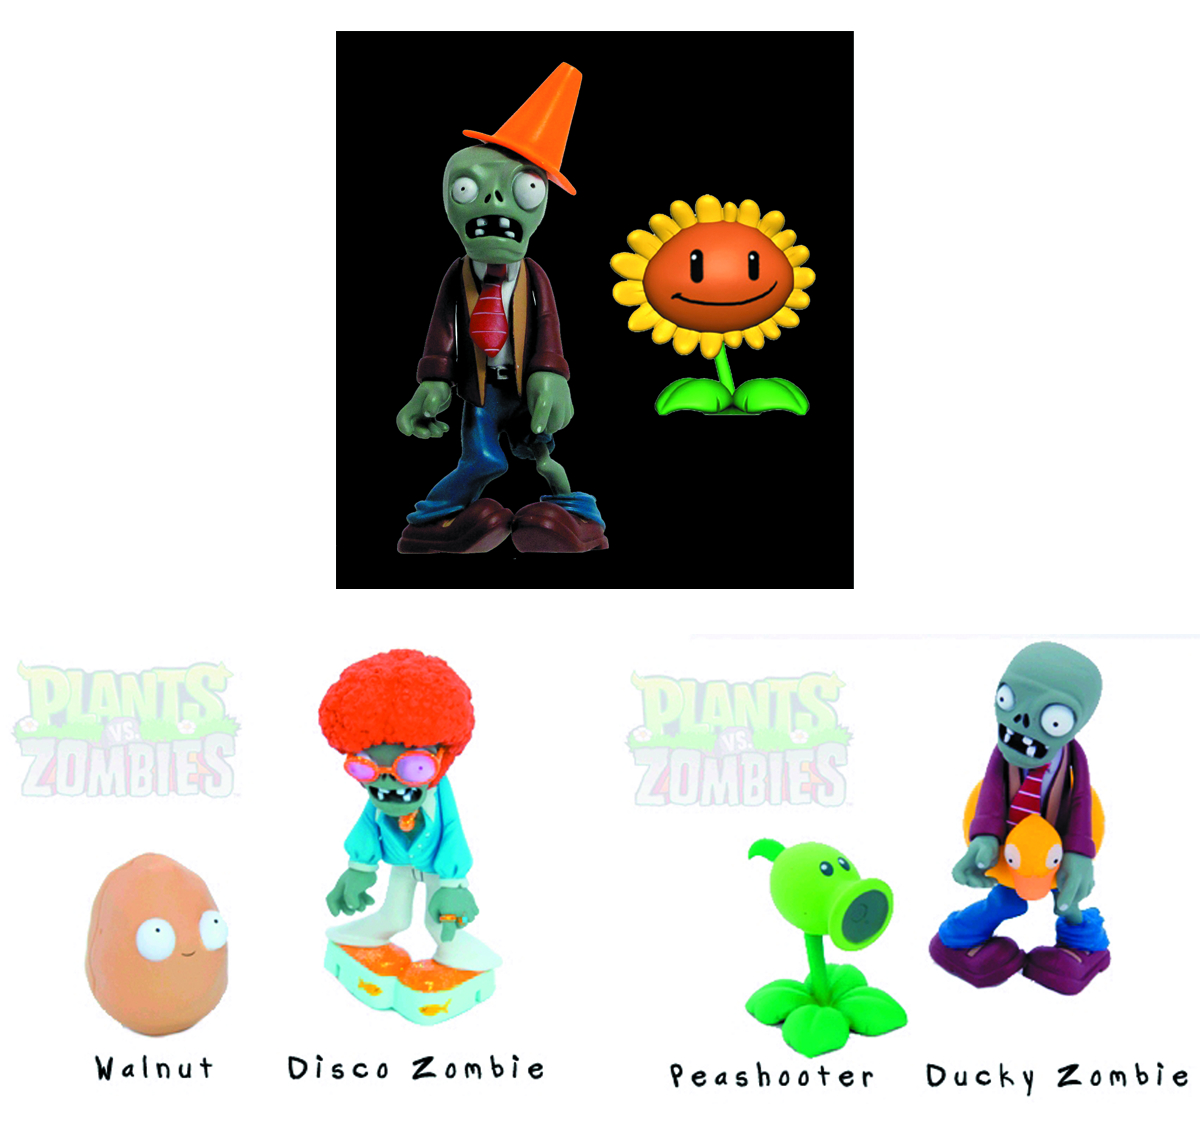 PLANTS VS ZOMBIES 3-IN FIG ASST